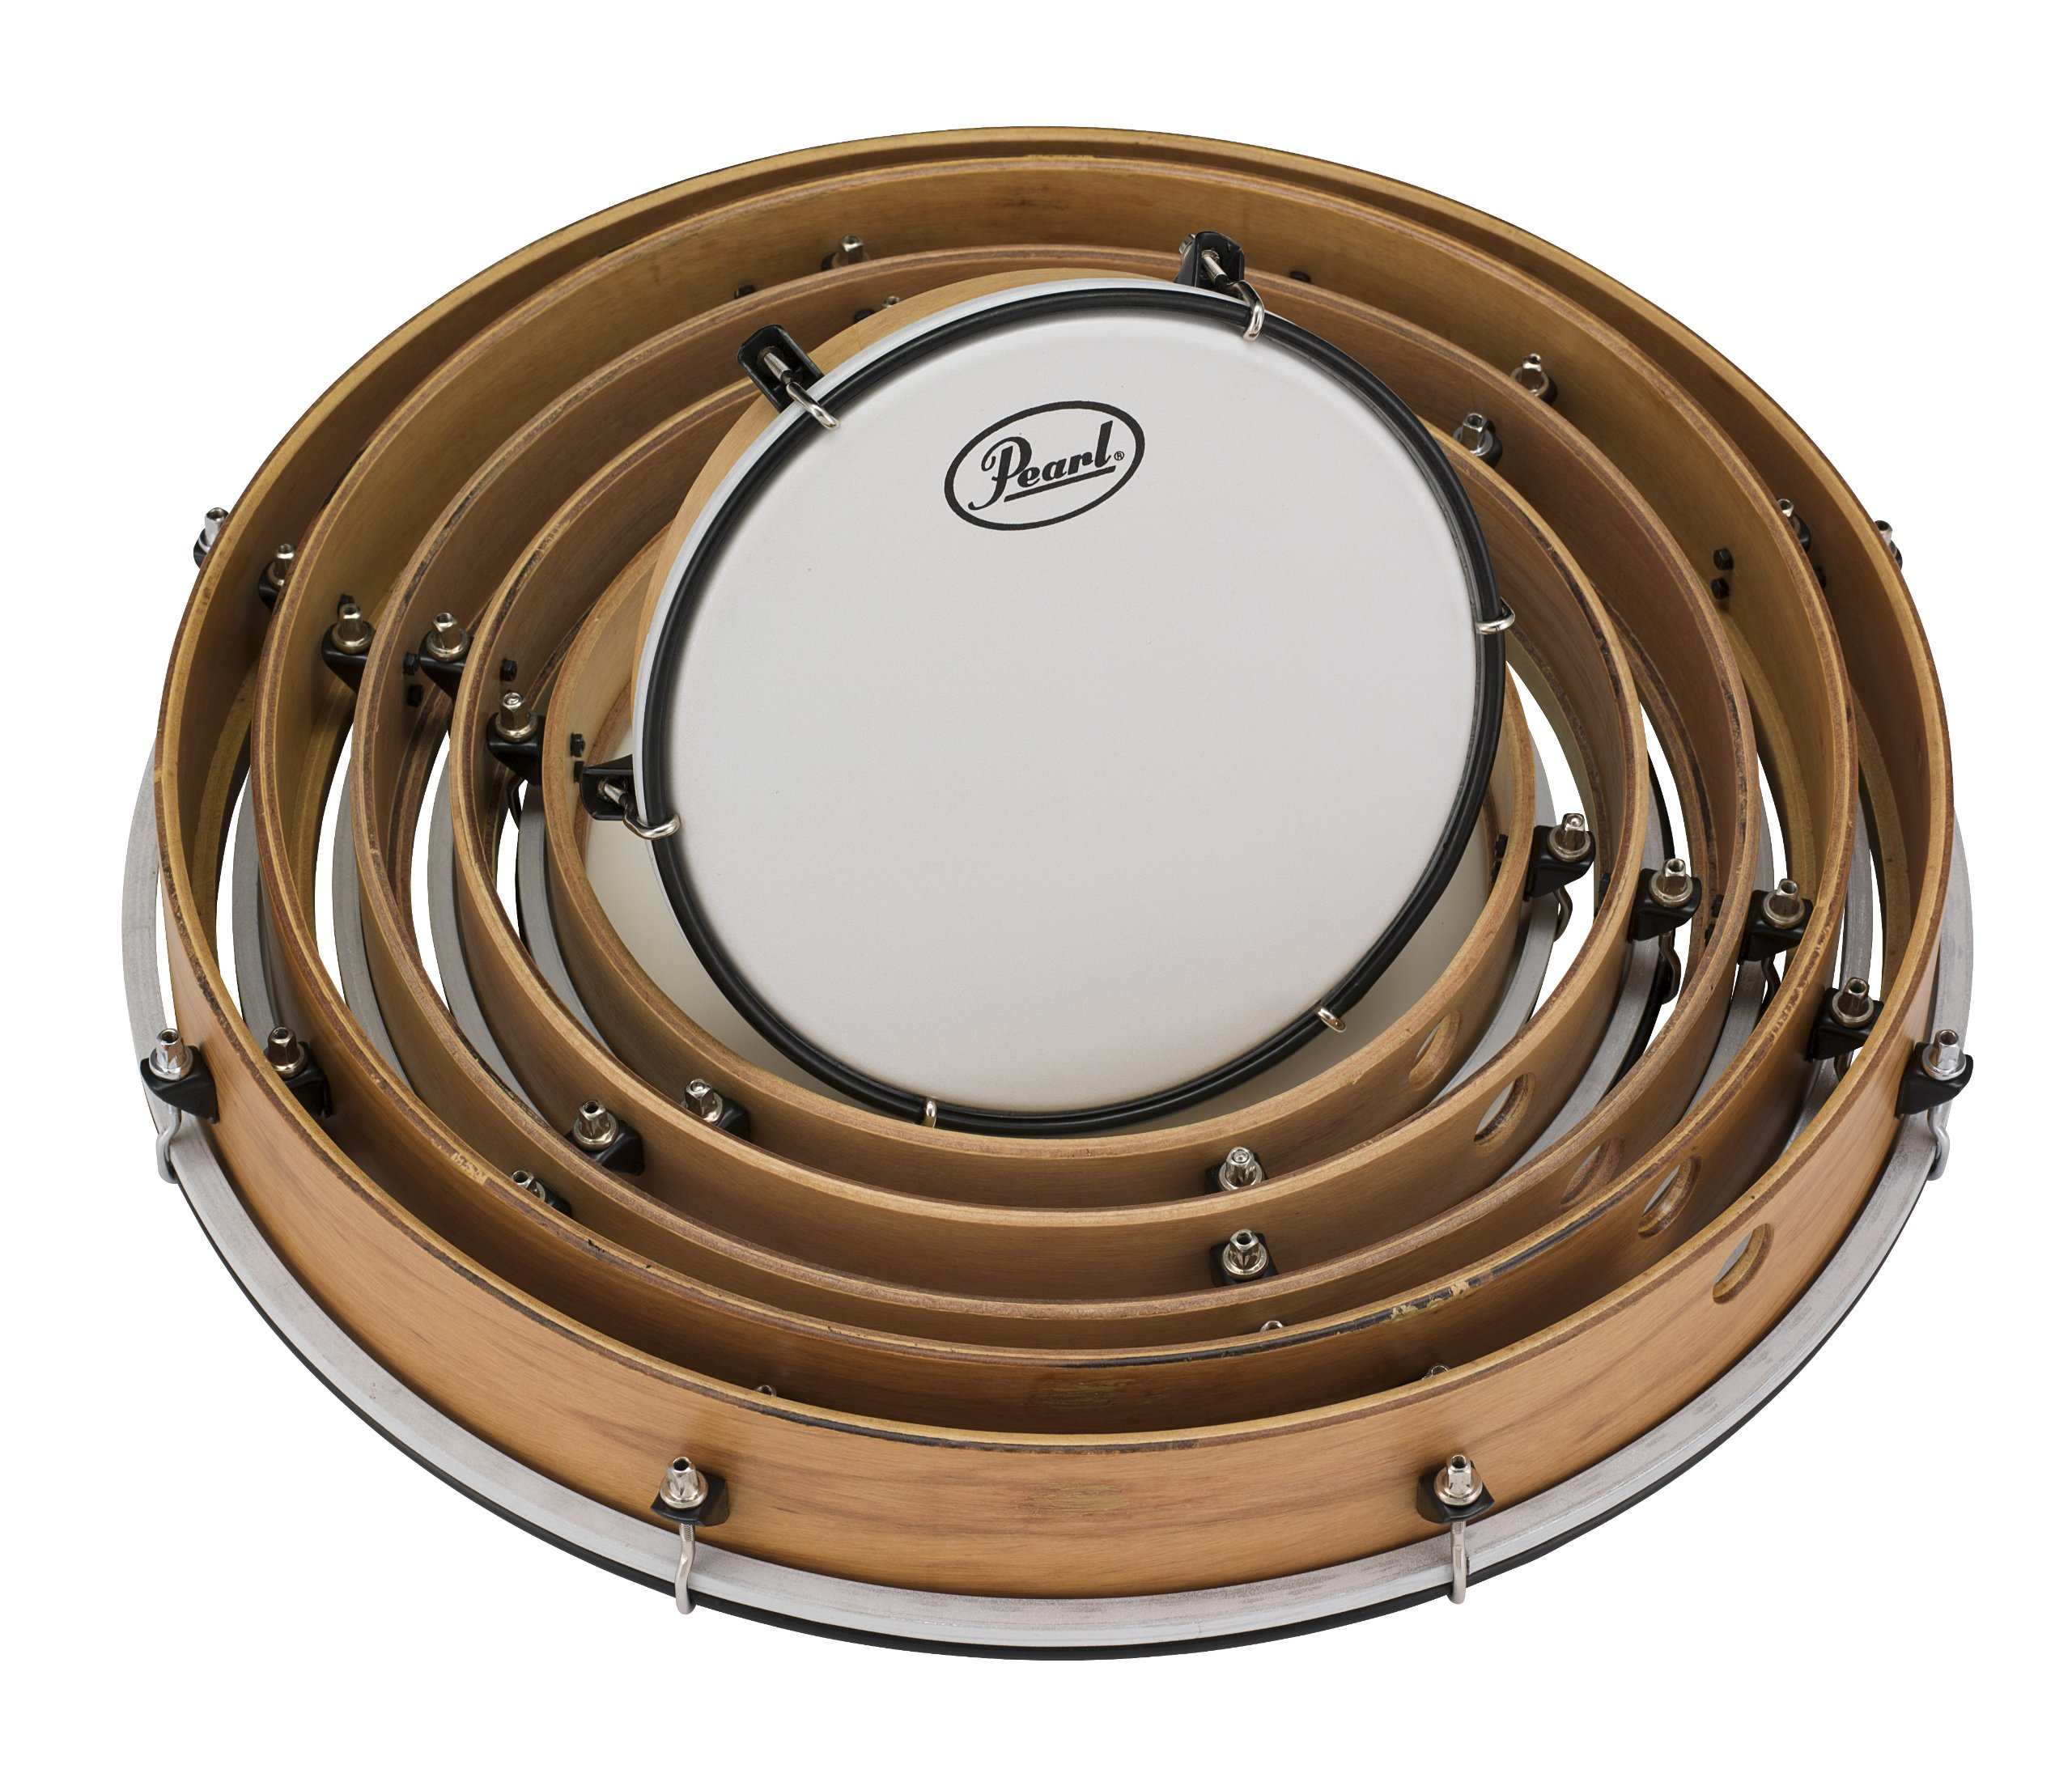 Pearl PFR0818C Frame Drums Set with Lugs and Coated Heads by Pearl